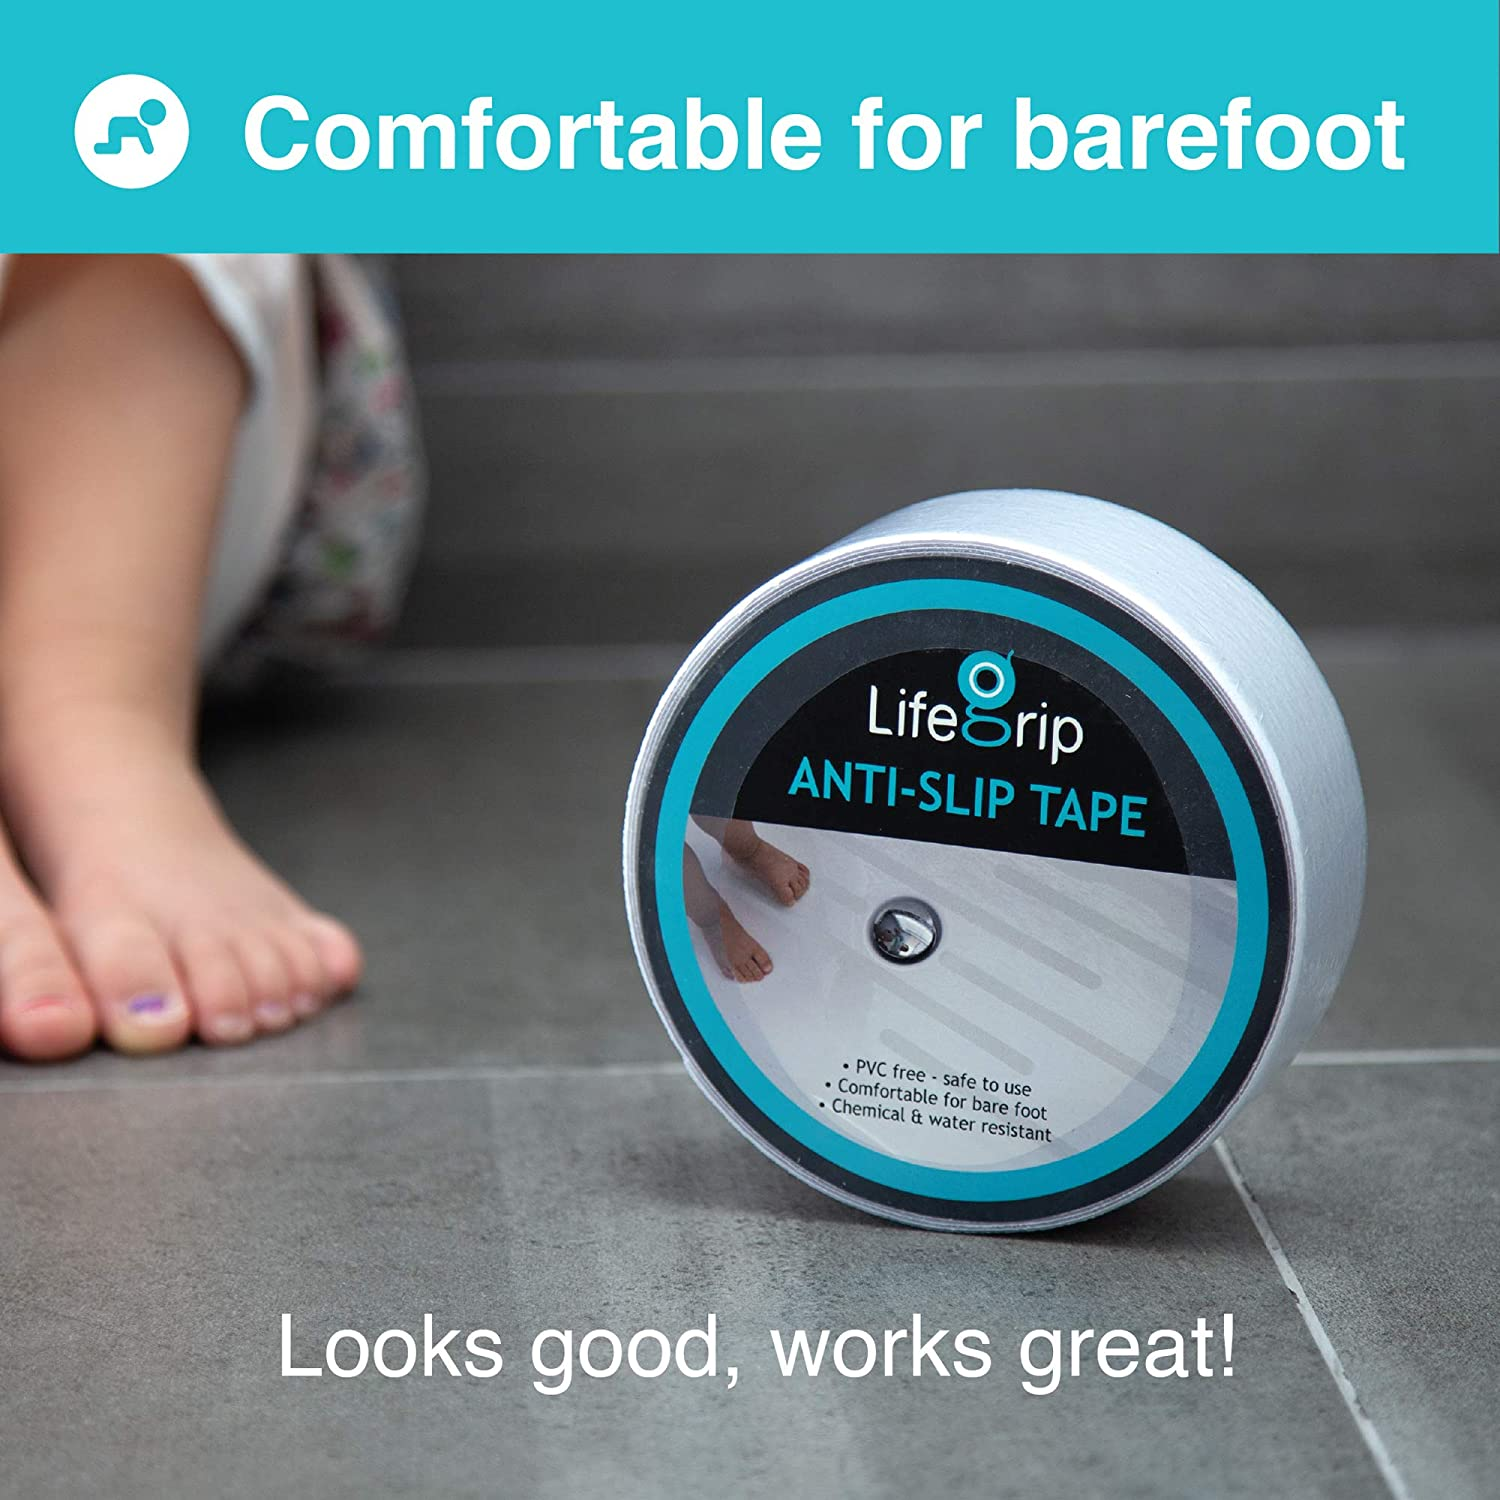 LifeGrip Anti Slip Fine Resilient Safety Tape Soft Stairs Boats Tub and Shower Treads Comfortable for Bare feet Pools 2 X 15 Clear 2 inch X 15 feet adds Non-Slip Traction to Tubs